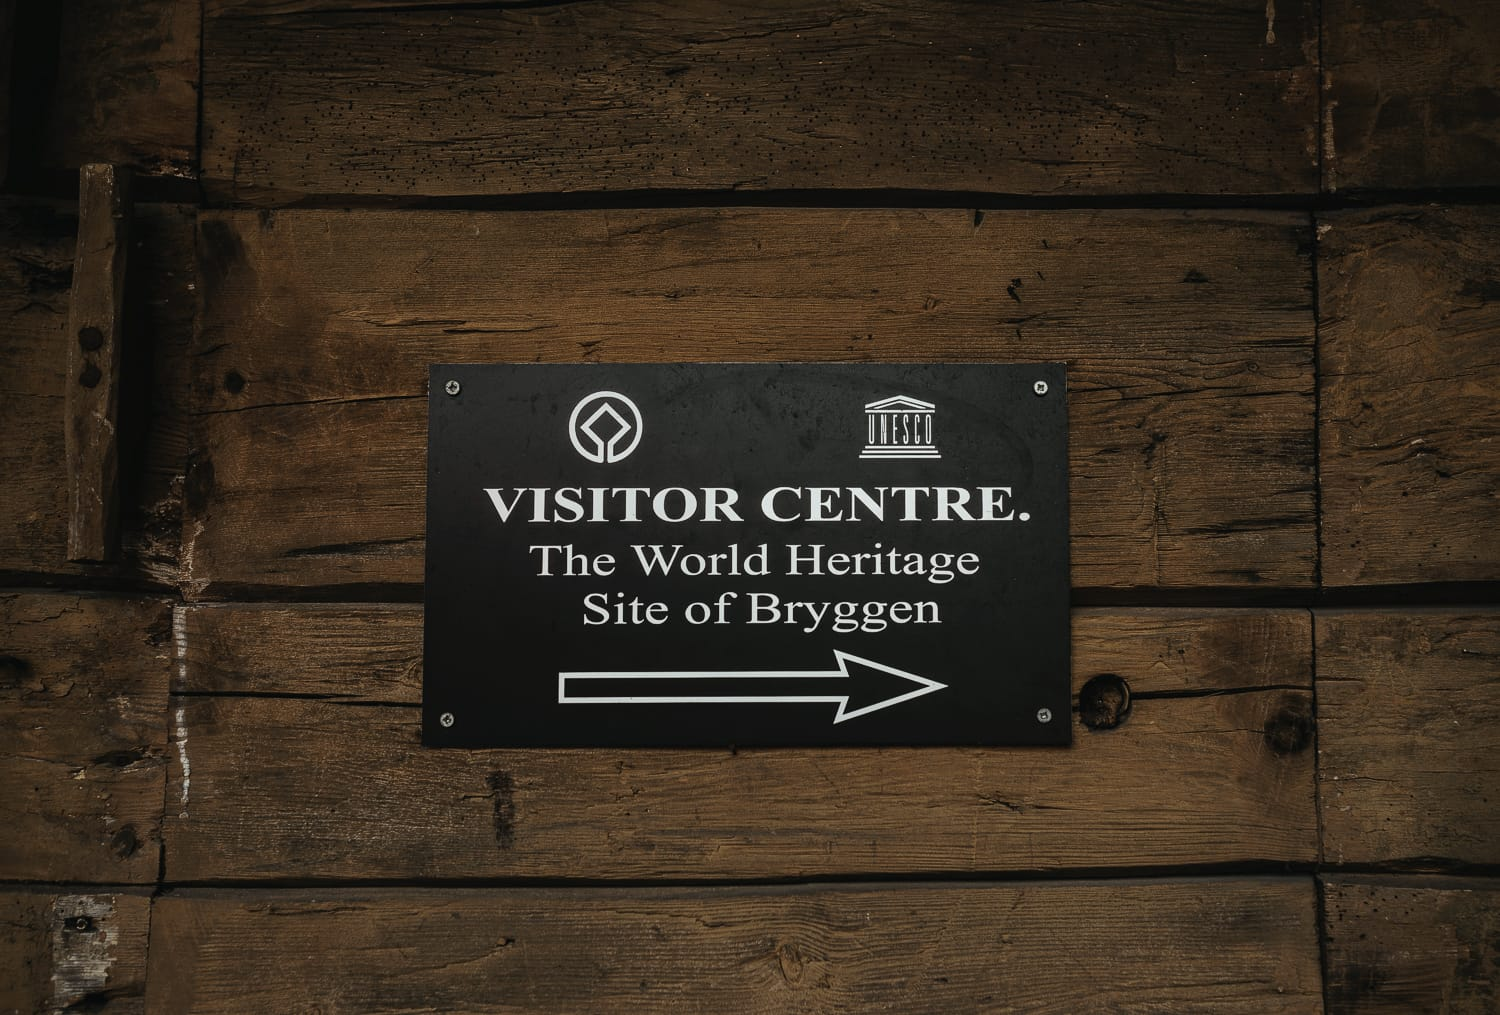 sign pointing to the visitor centre in Bergen, Norway